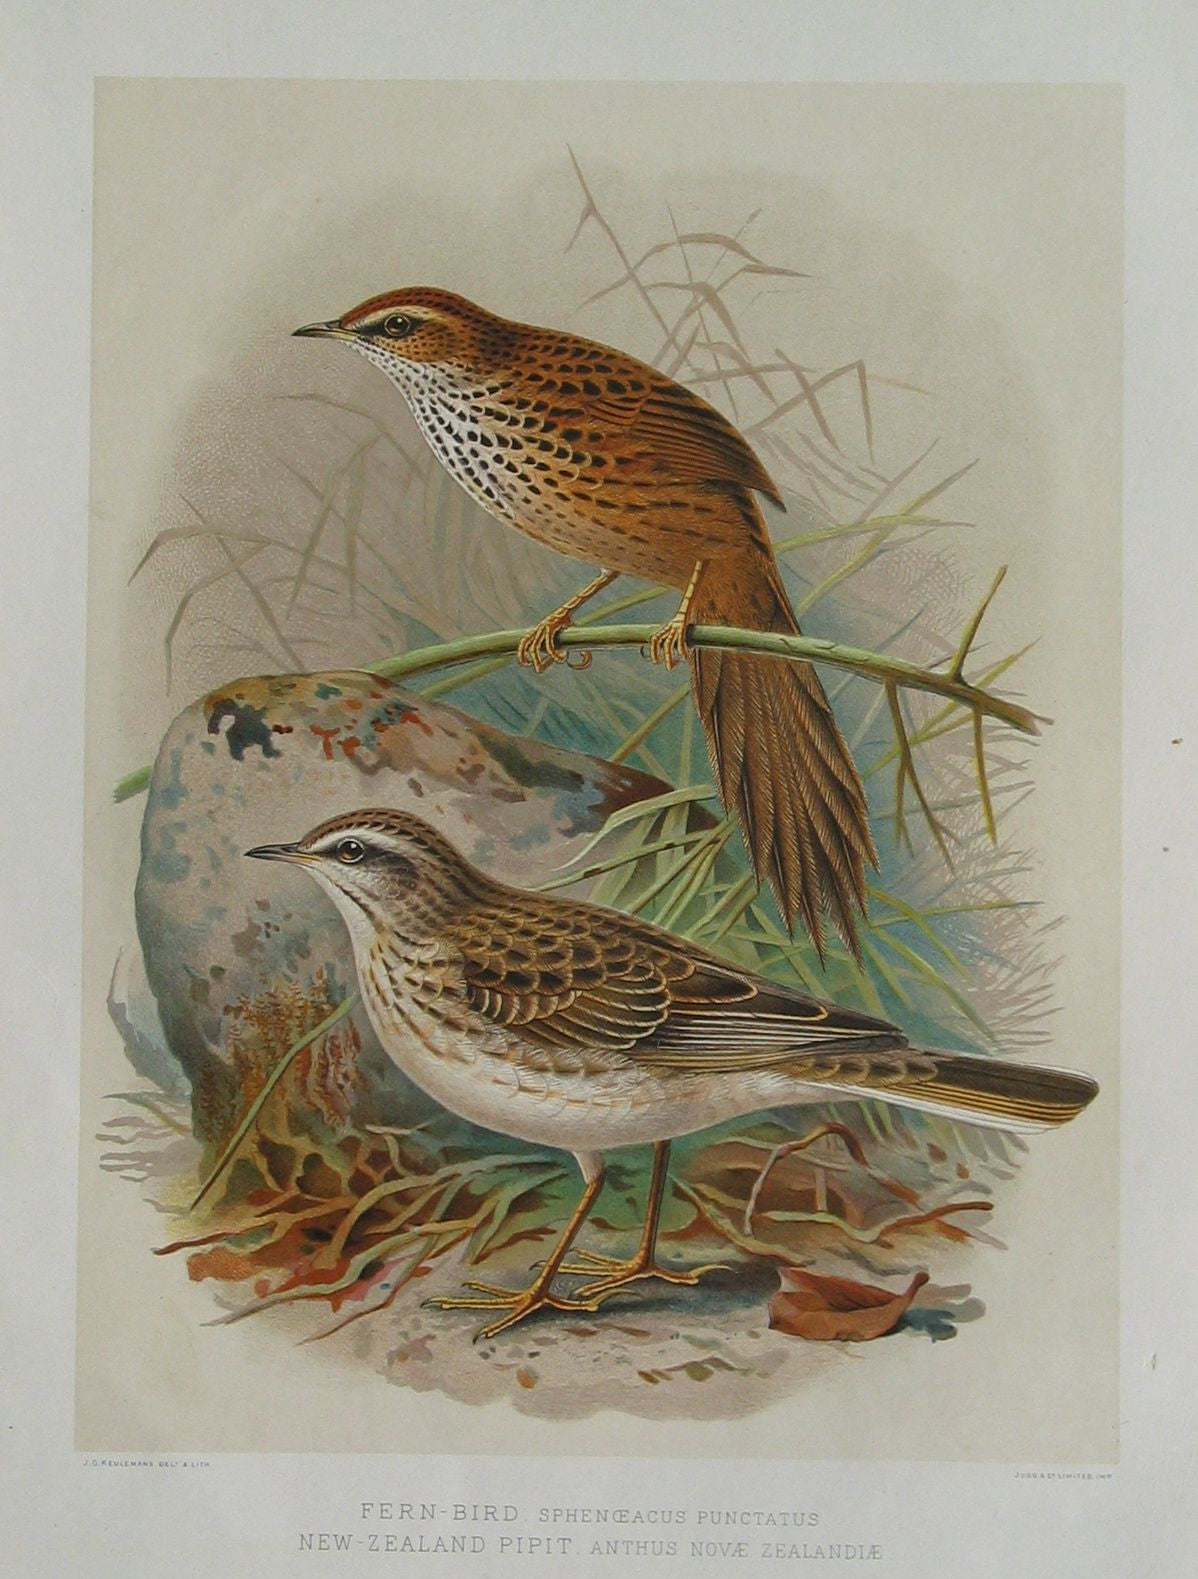 Fern Bird and New Zealand Pipit